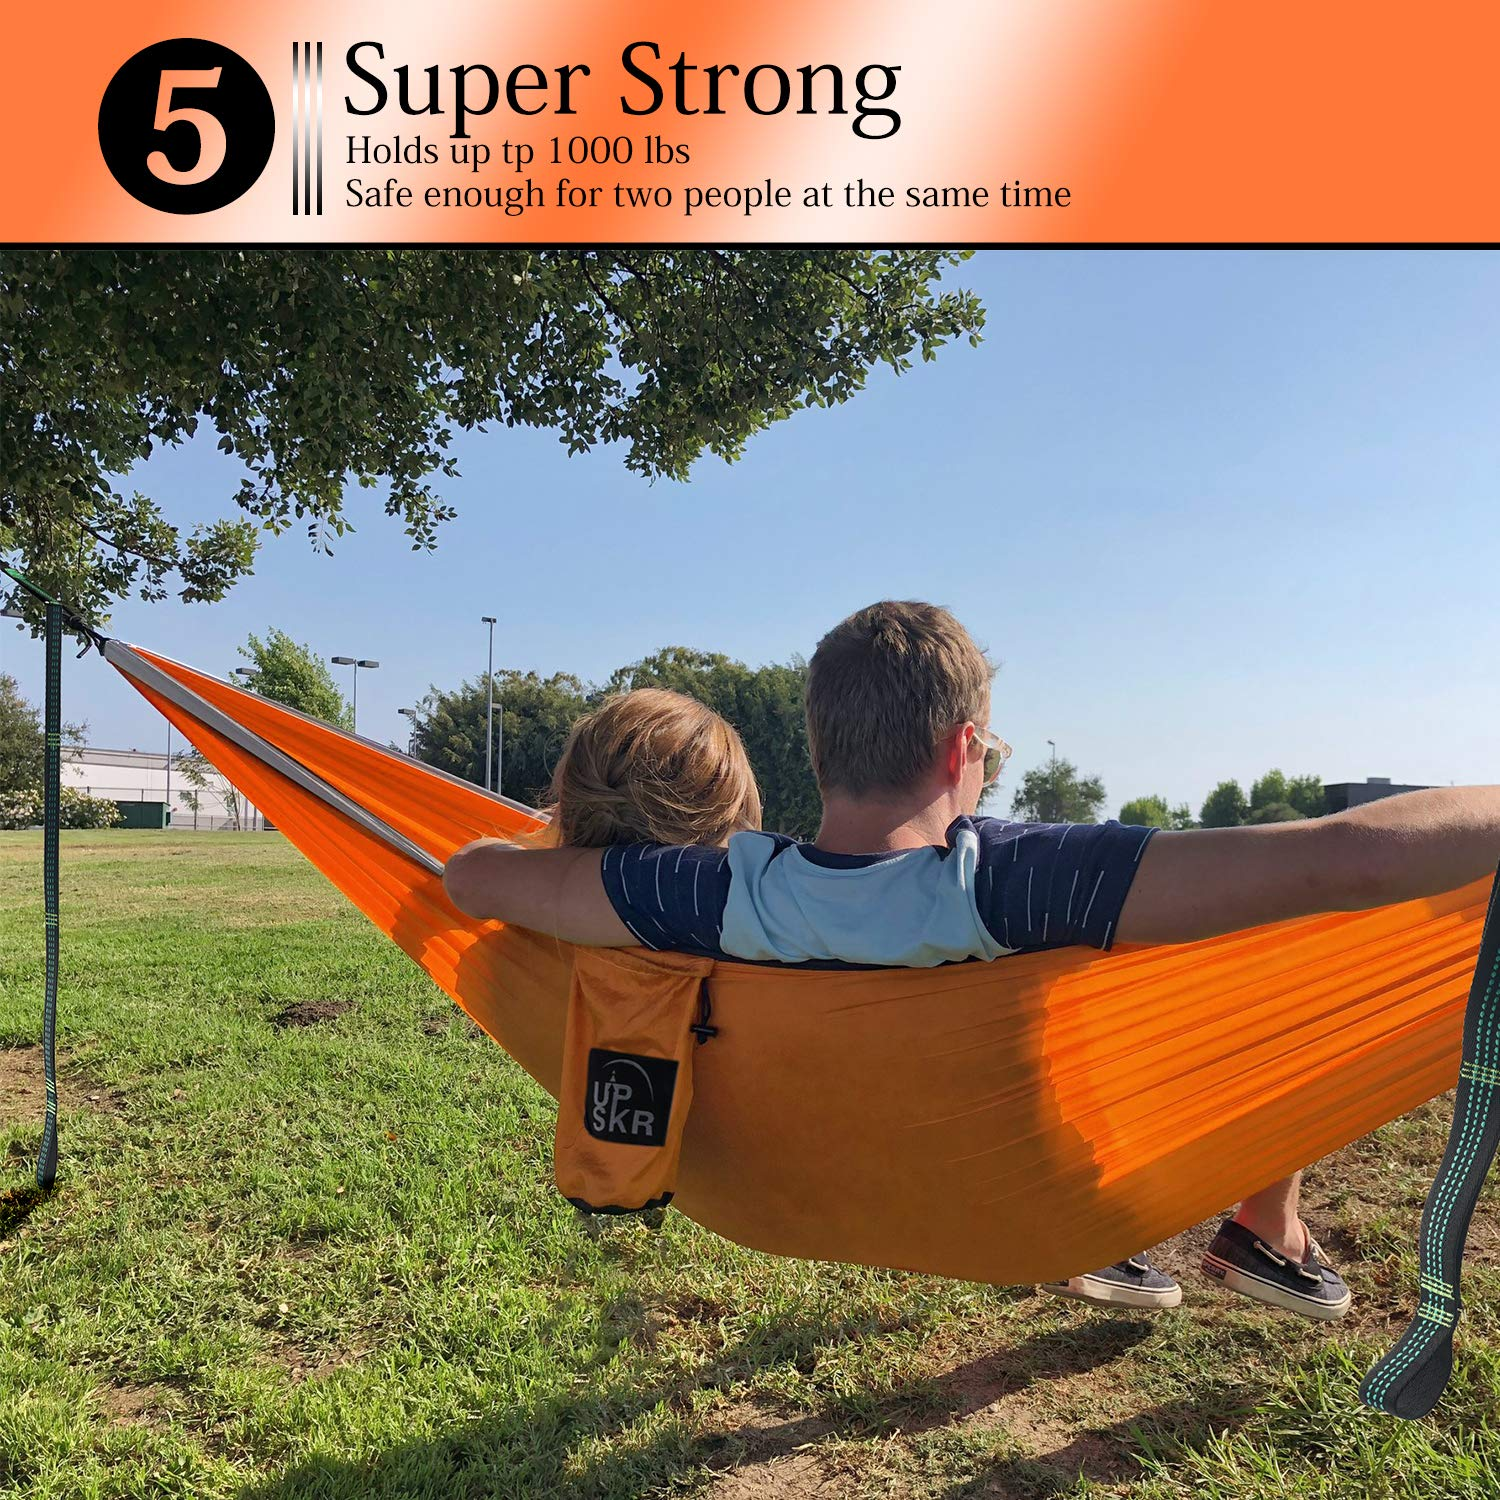 Hiking Backpacking,Beach,Yard /& Travel Lounger-Heavy Duty Gear Holds 1000lb UPSKR Double Camping Hammock-Lightweight 70D Ripstop Portable Parachute Hammock Outdoor Camp